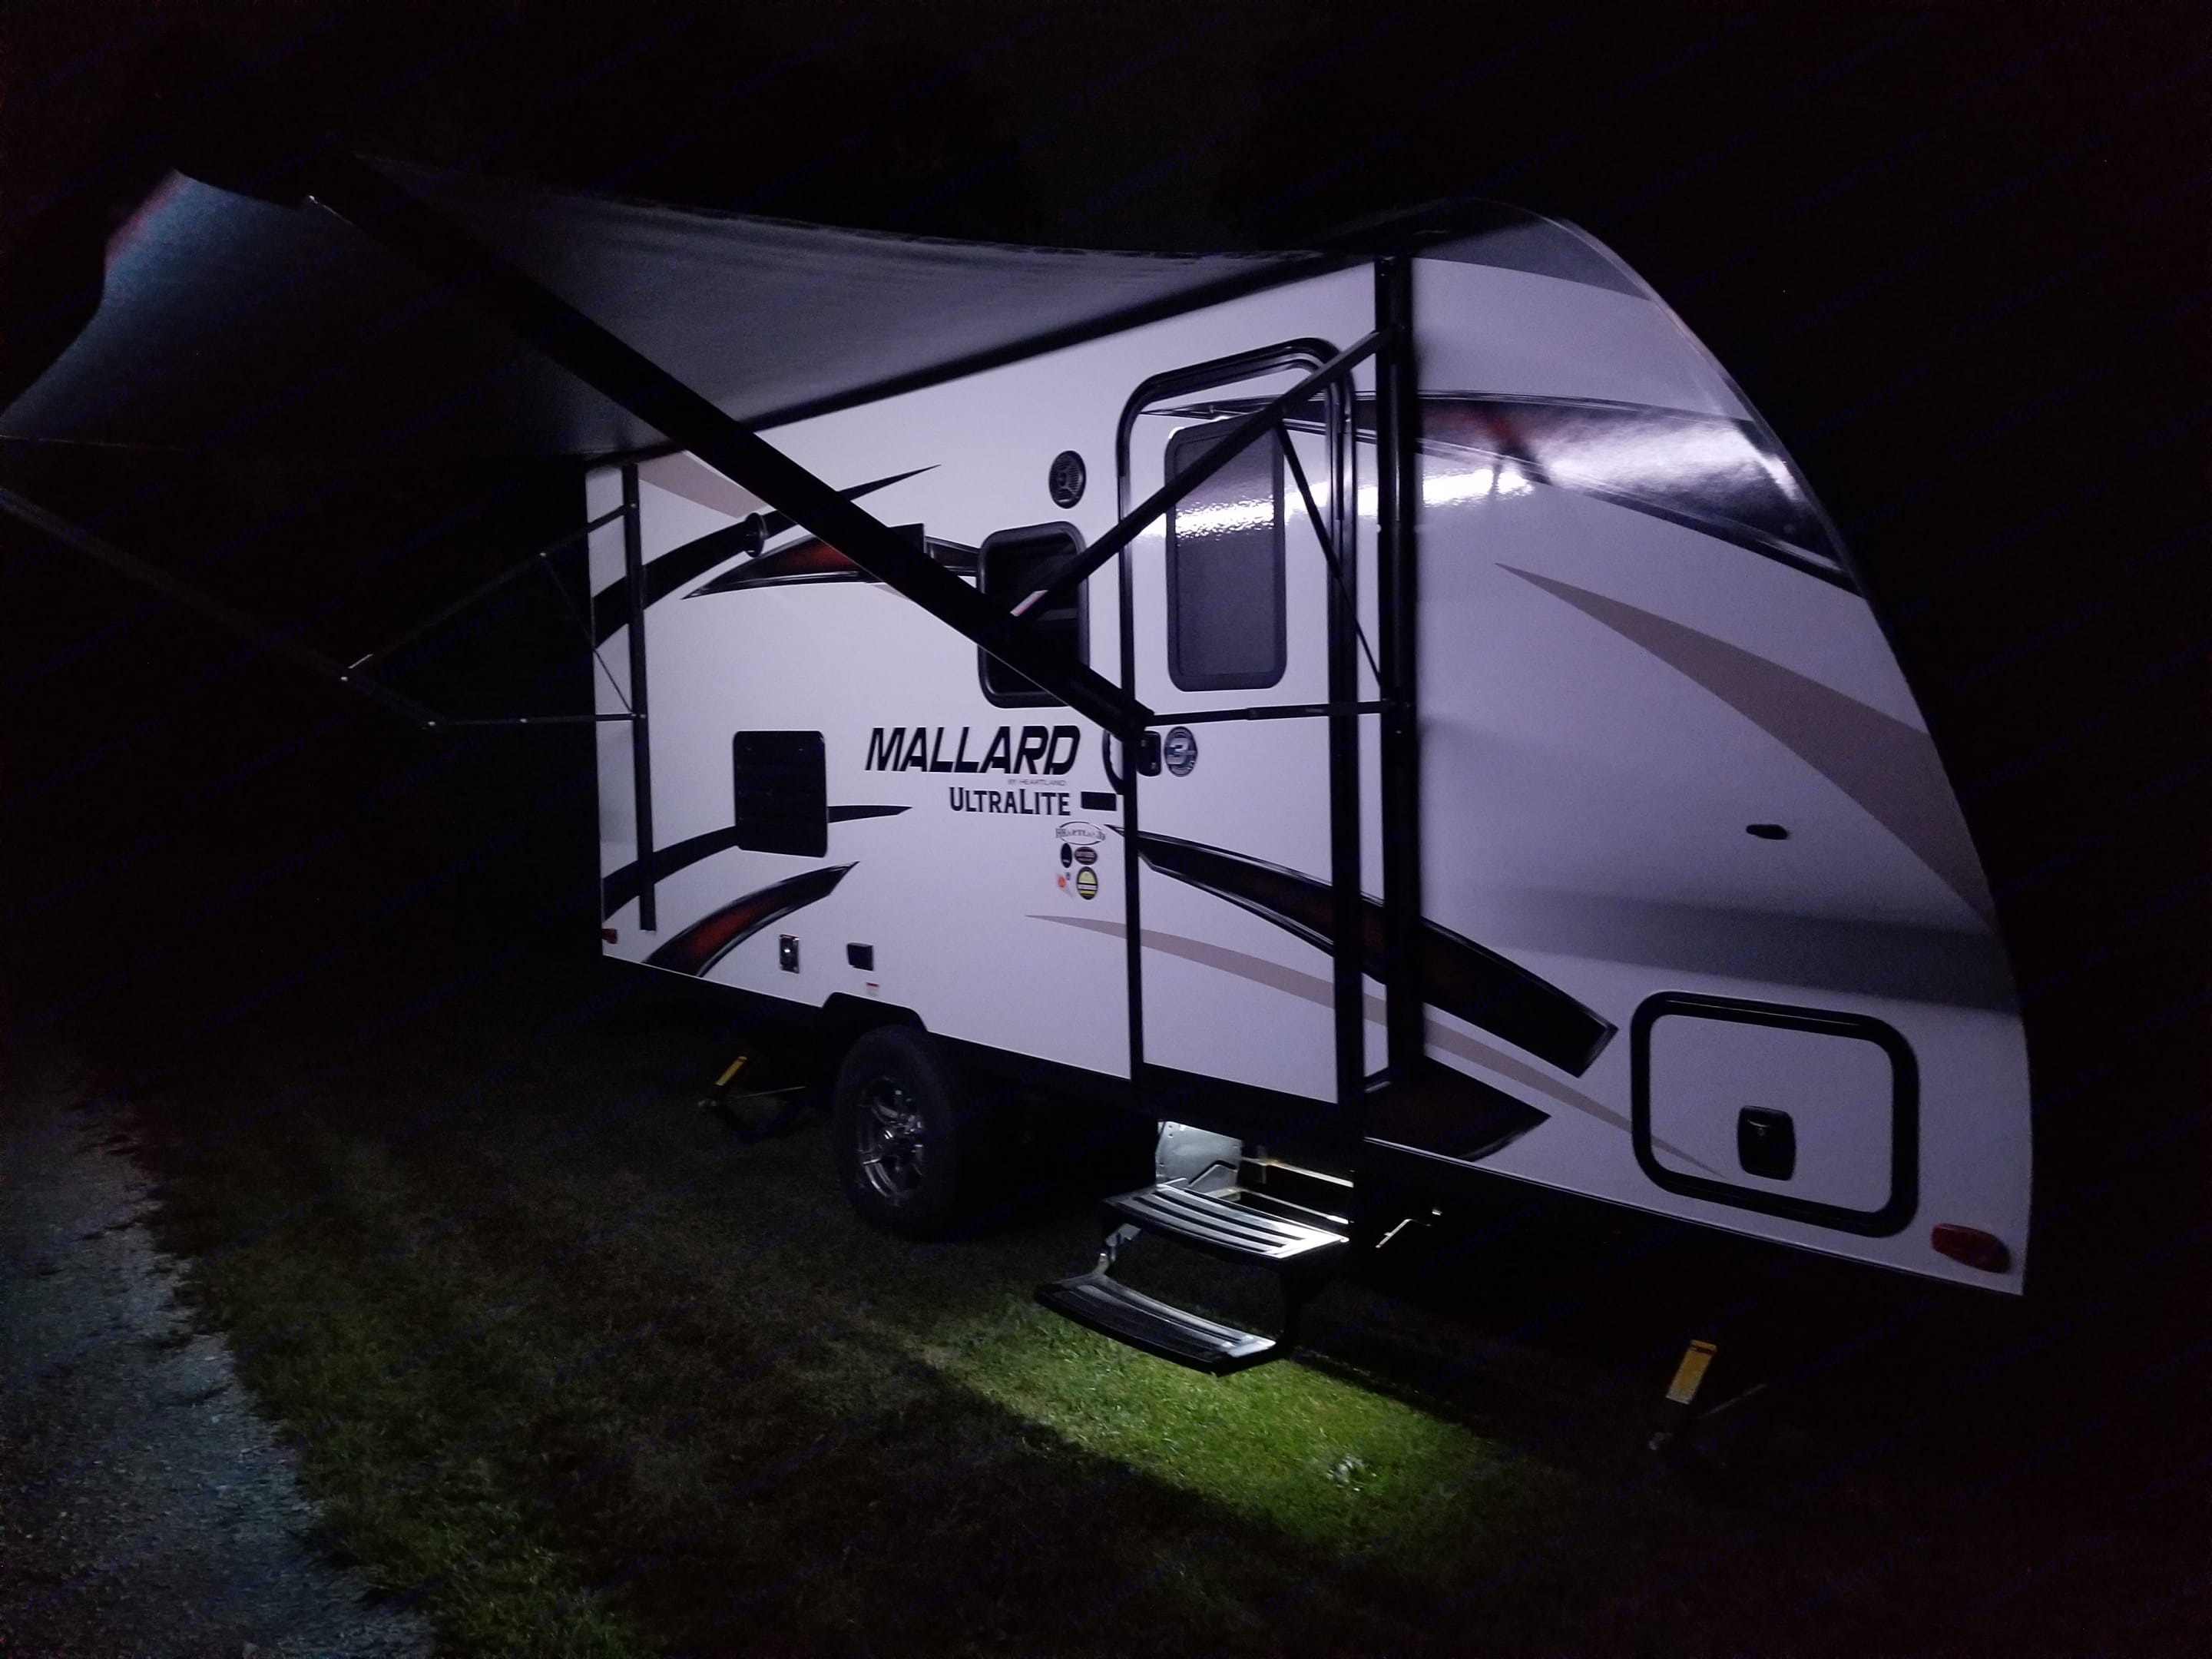 Lit Up from the Awning LED Light Bar that Changes Colors and Brightness with a Remote Control. Heartland M185 2018